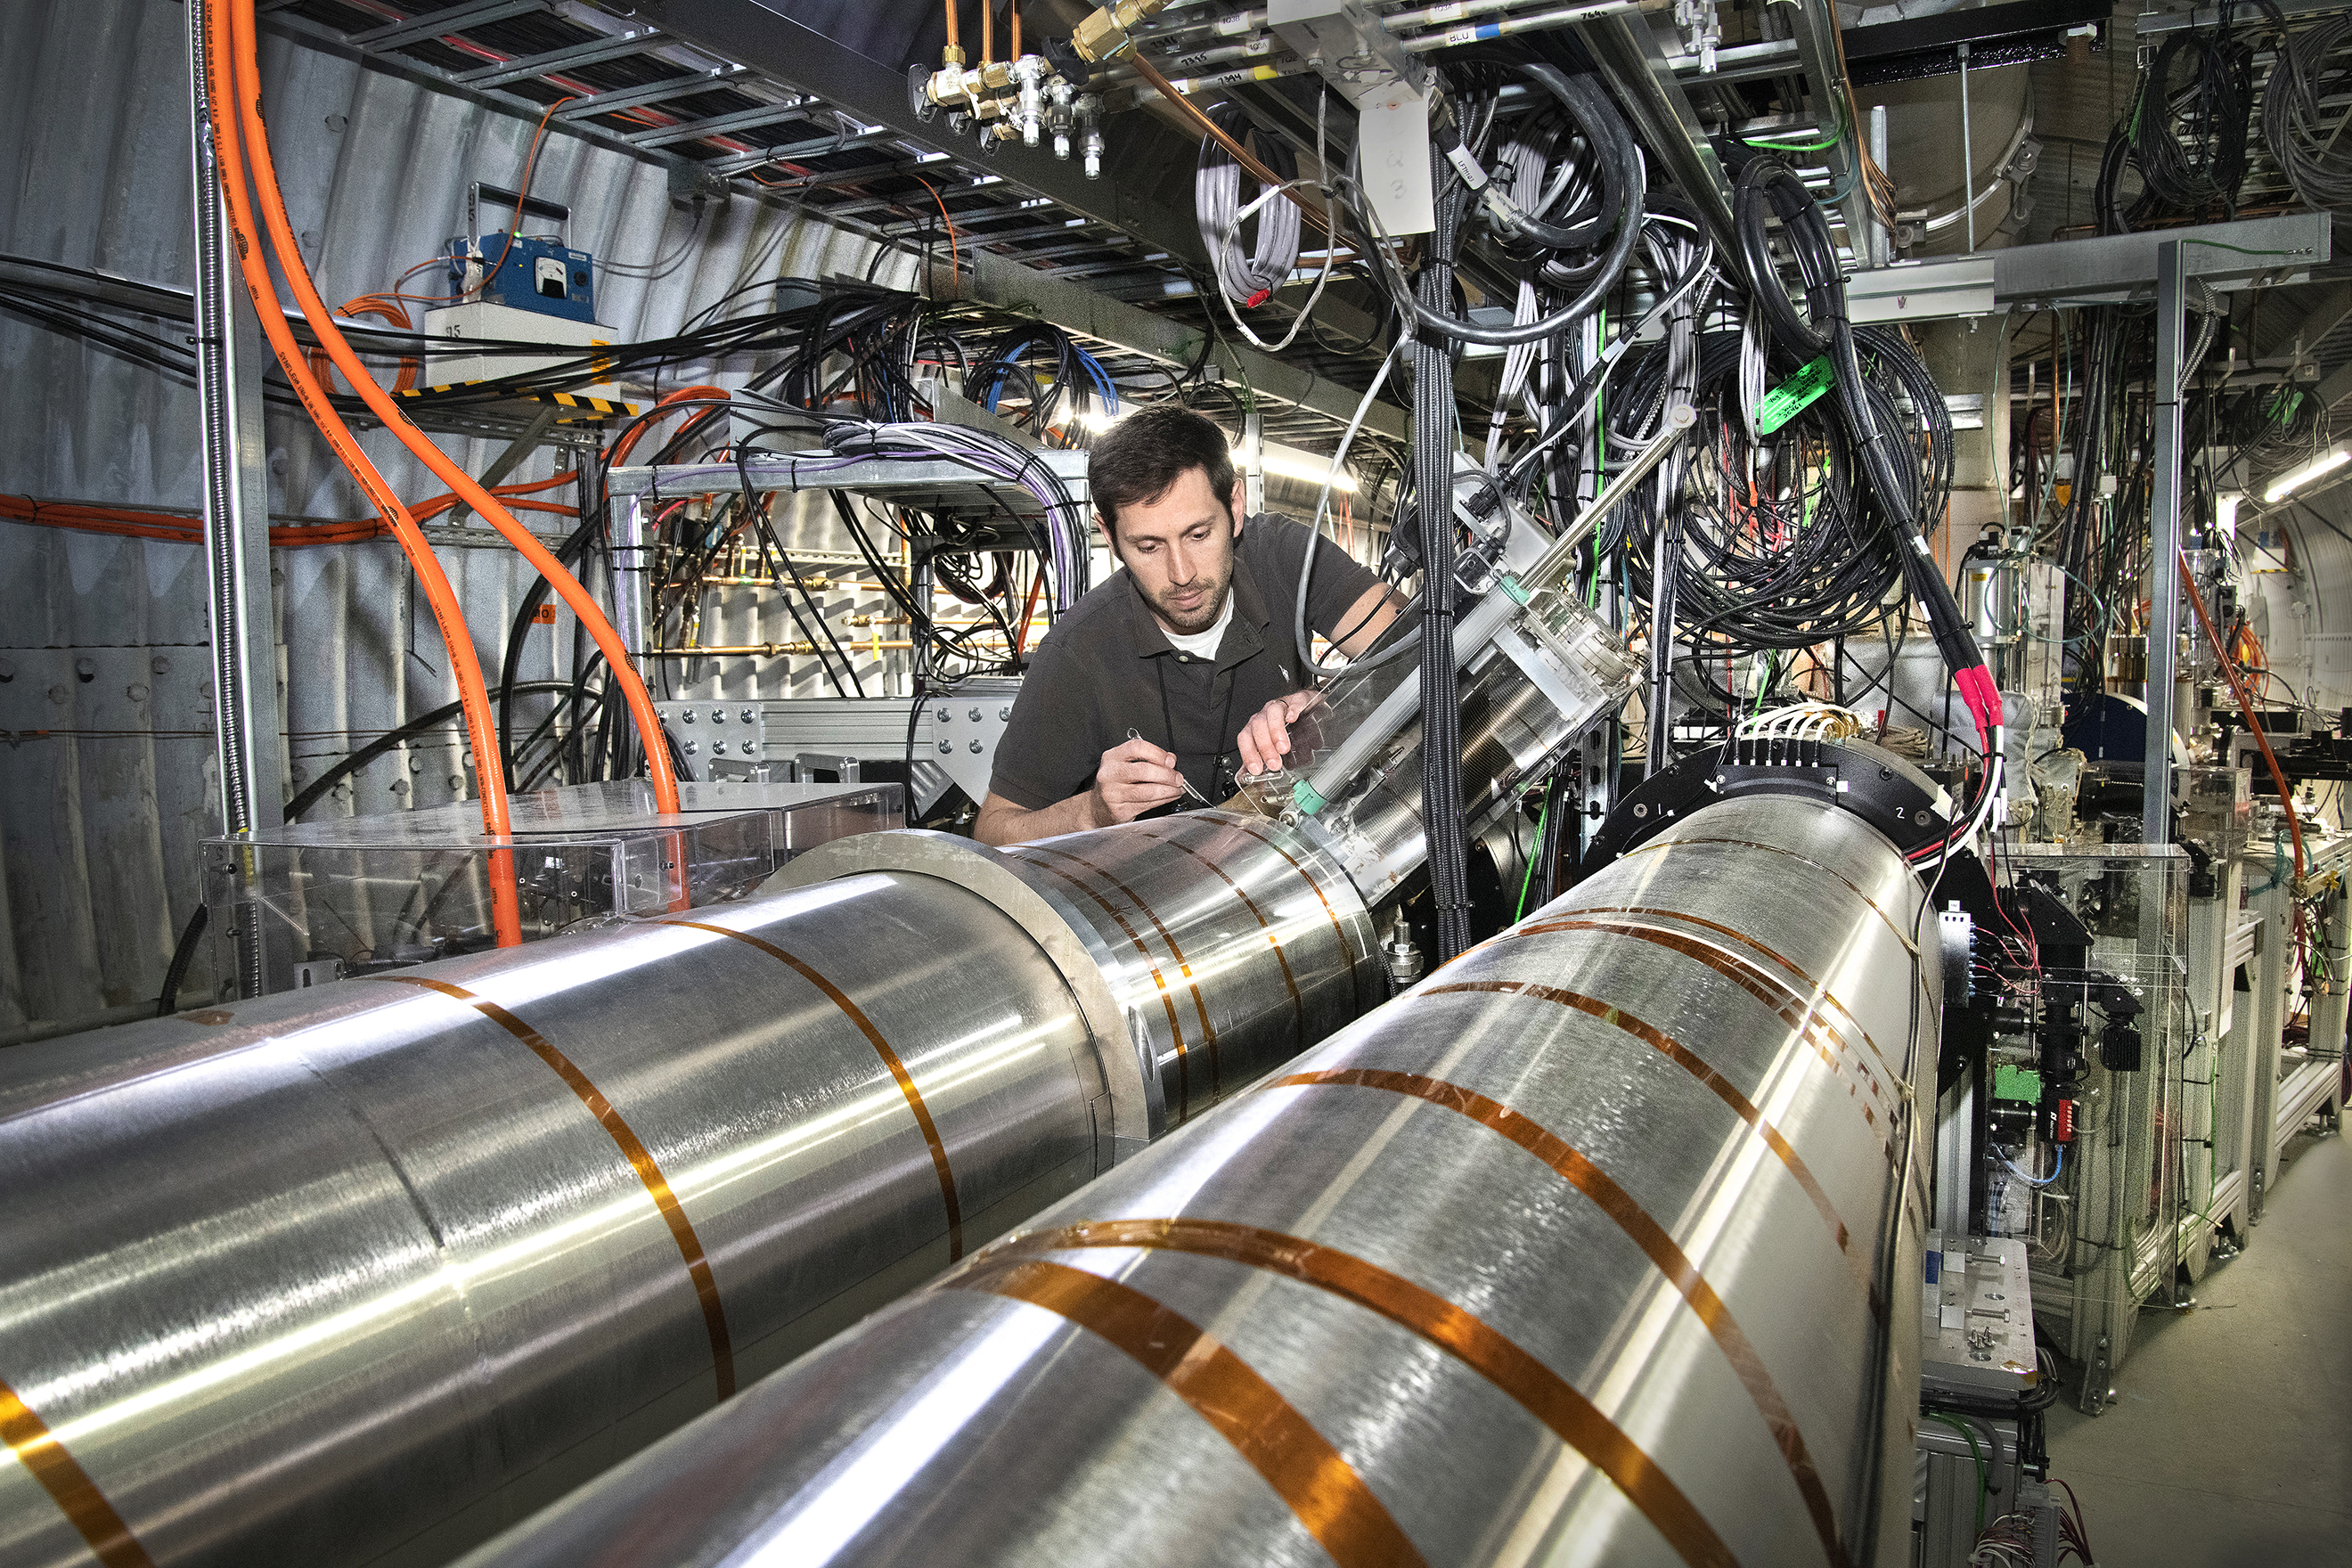 Brookhaven Lab engineer Mathew Paniccia next to the LEReC cooling sections. Electrons have successfully cooled bunches of ions in these cooling sections of the Relativistic Heavy Ion Collider (RHIC).